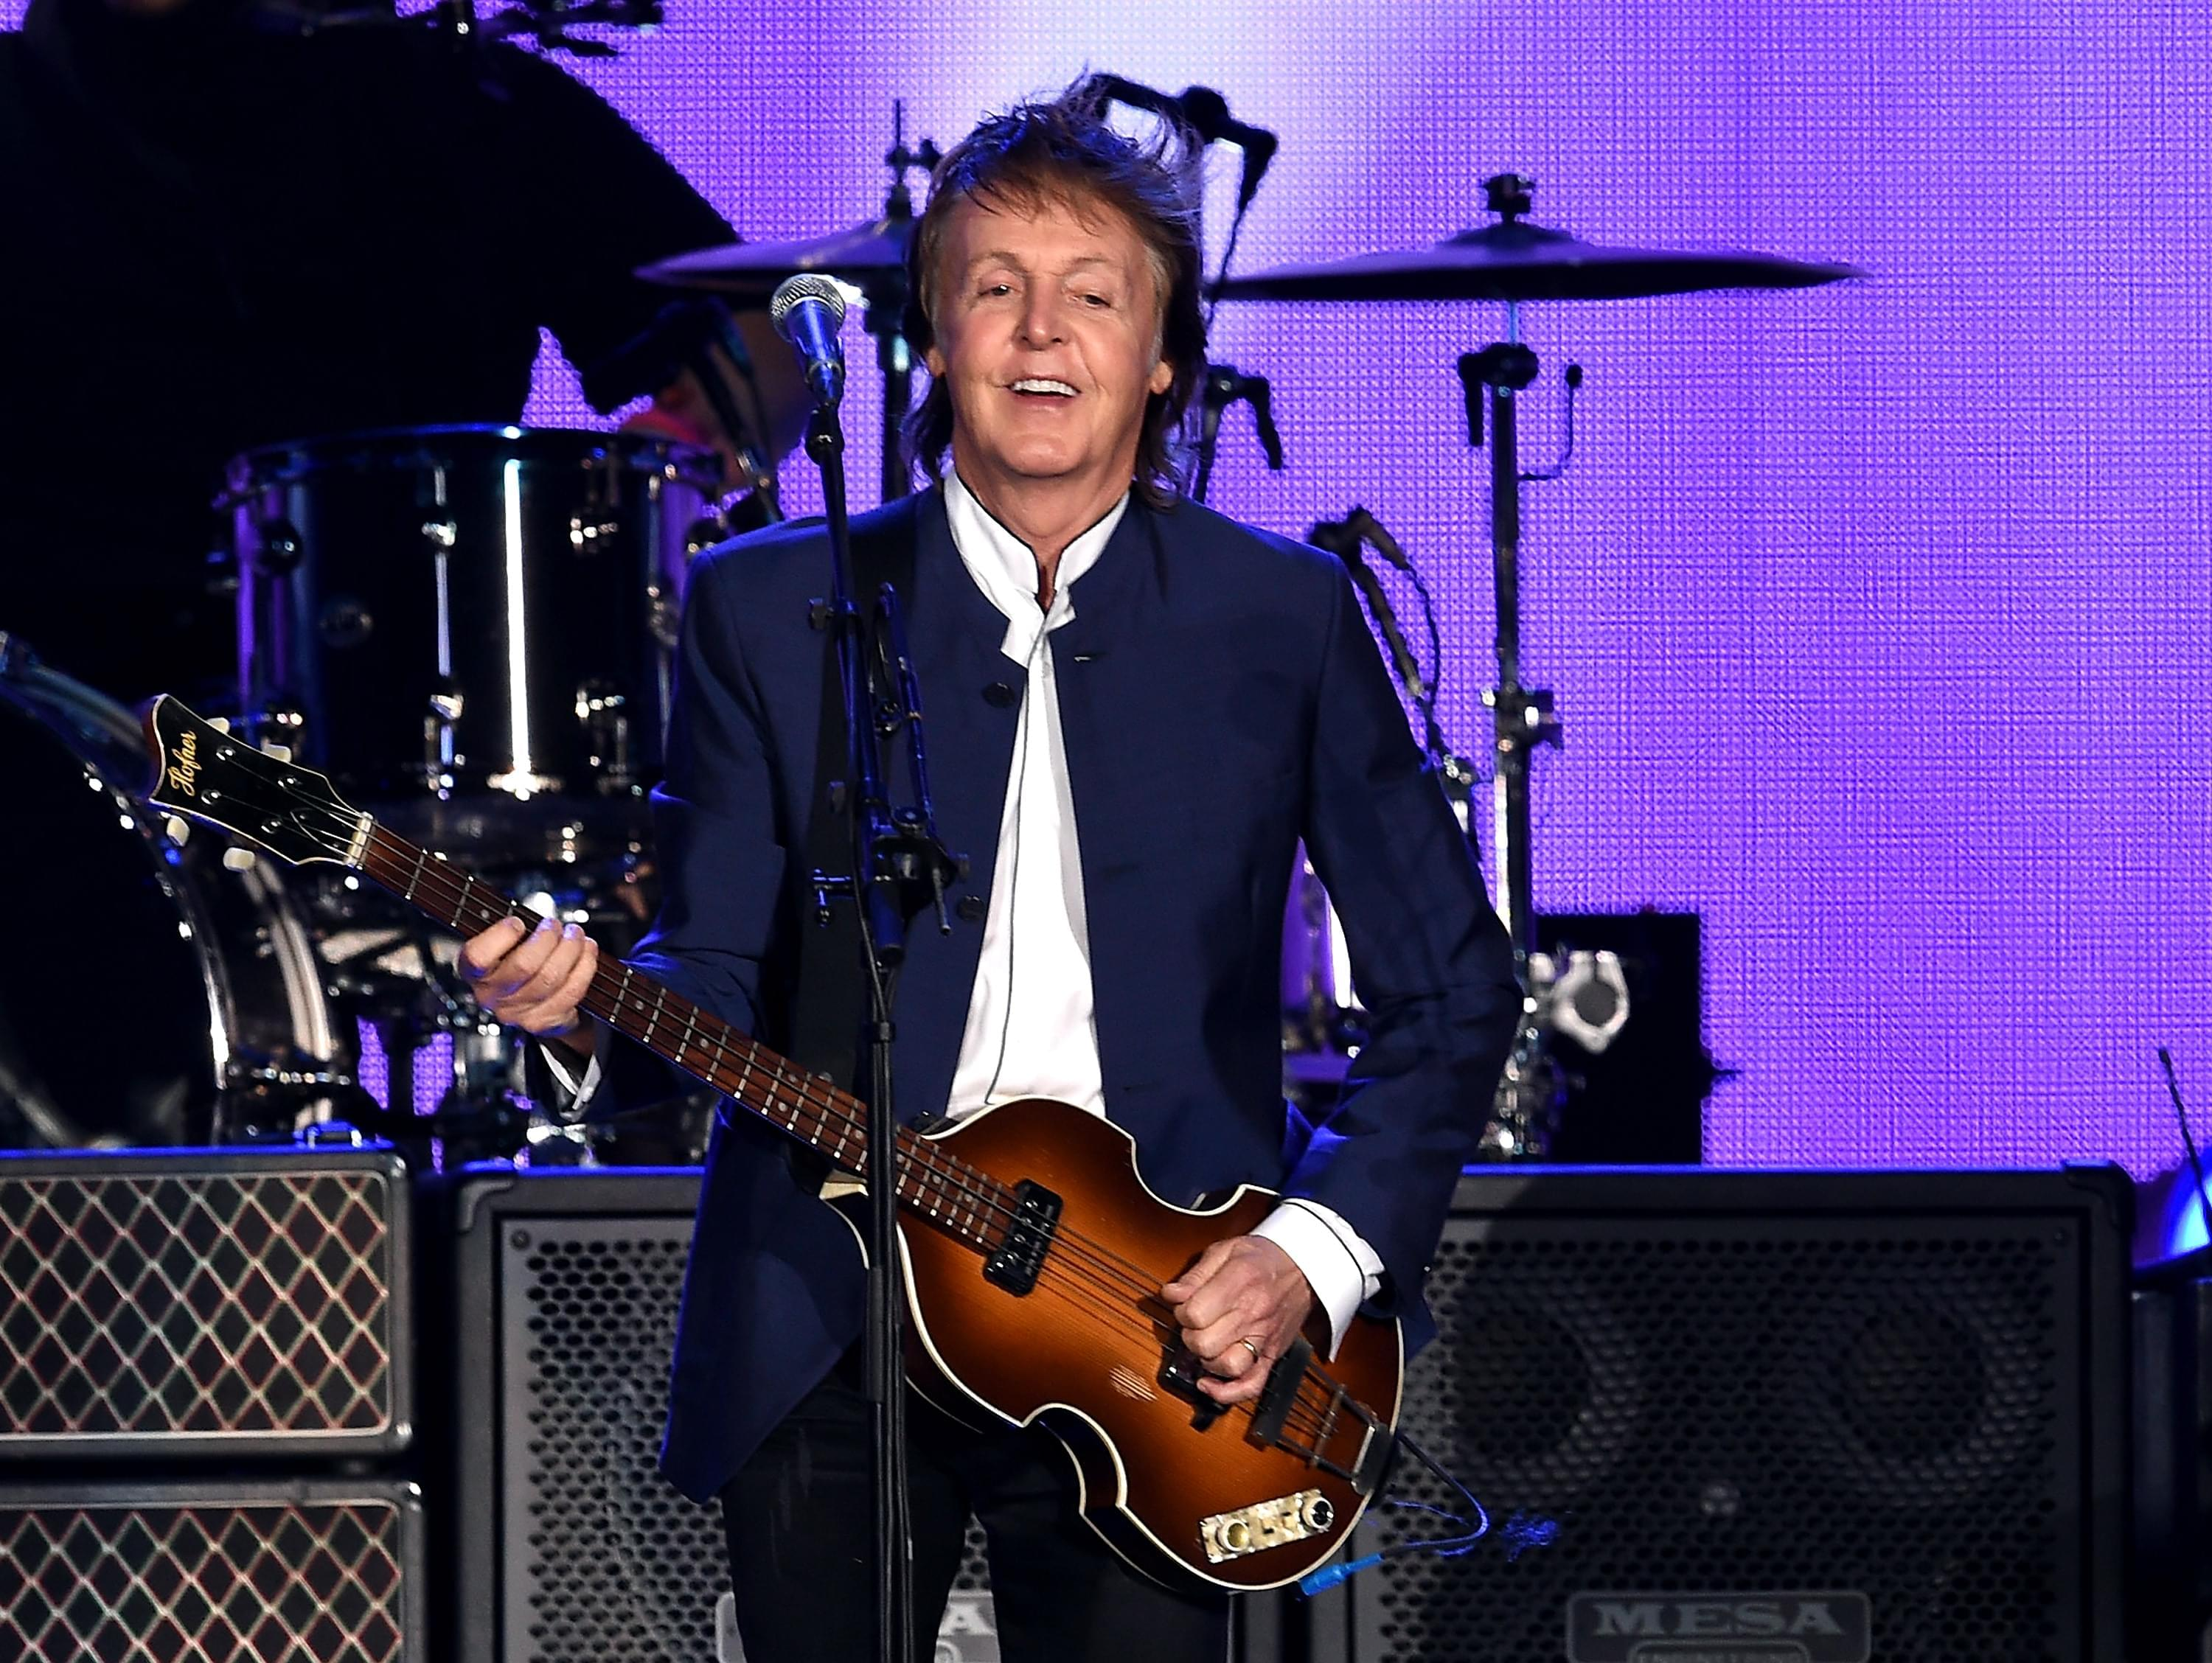 Paul McCartney Literally Is A One Man Band In His Newest Album, 'McCartney III'